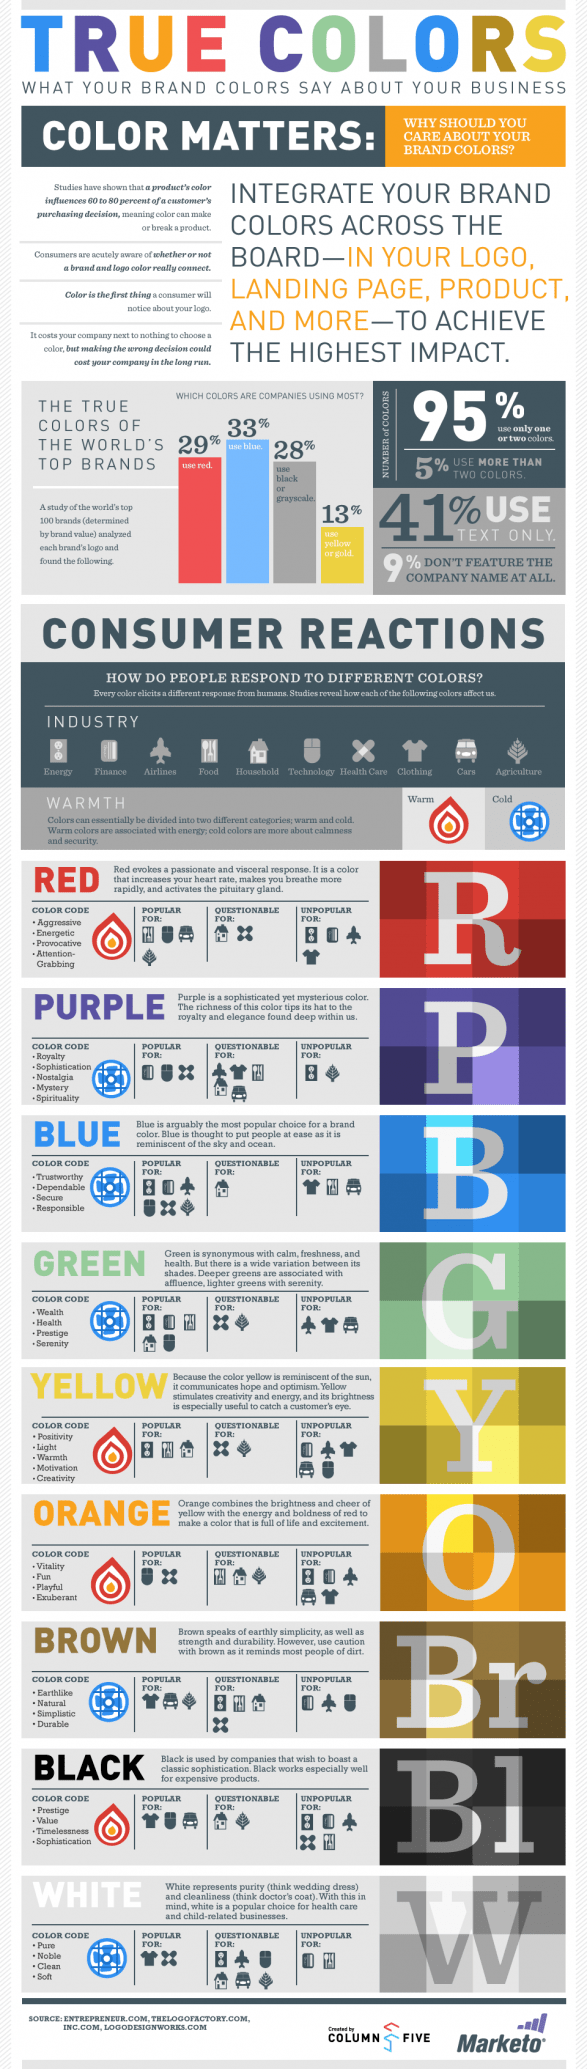 True Colors: What Your Brand Colors Say About Your Business